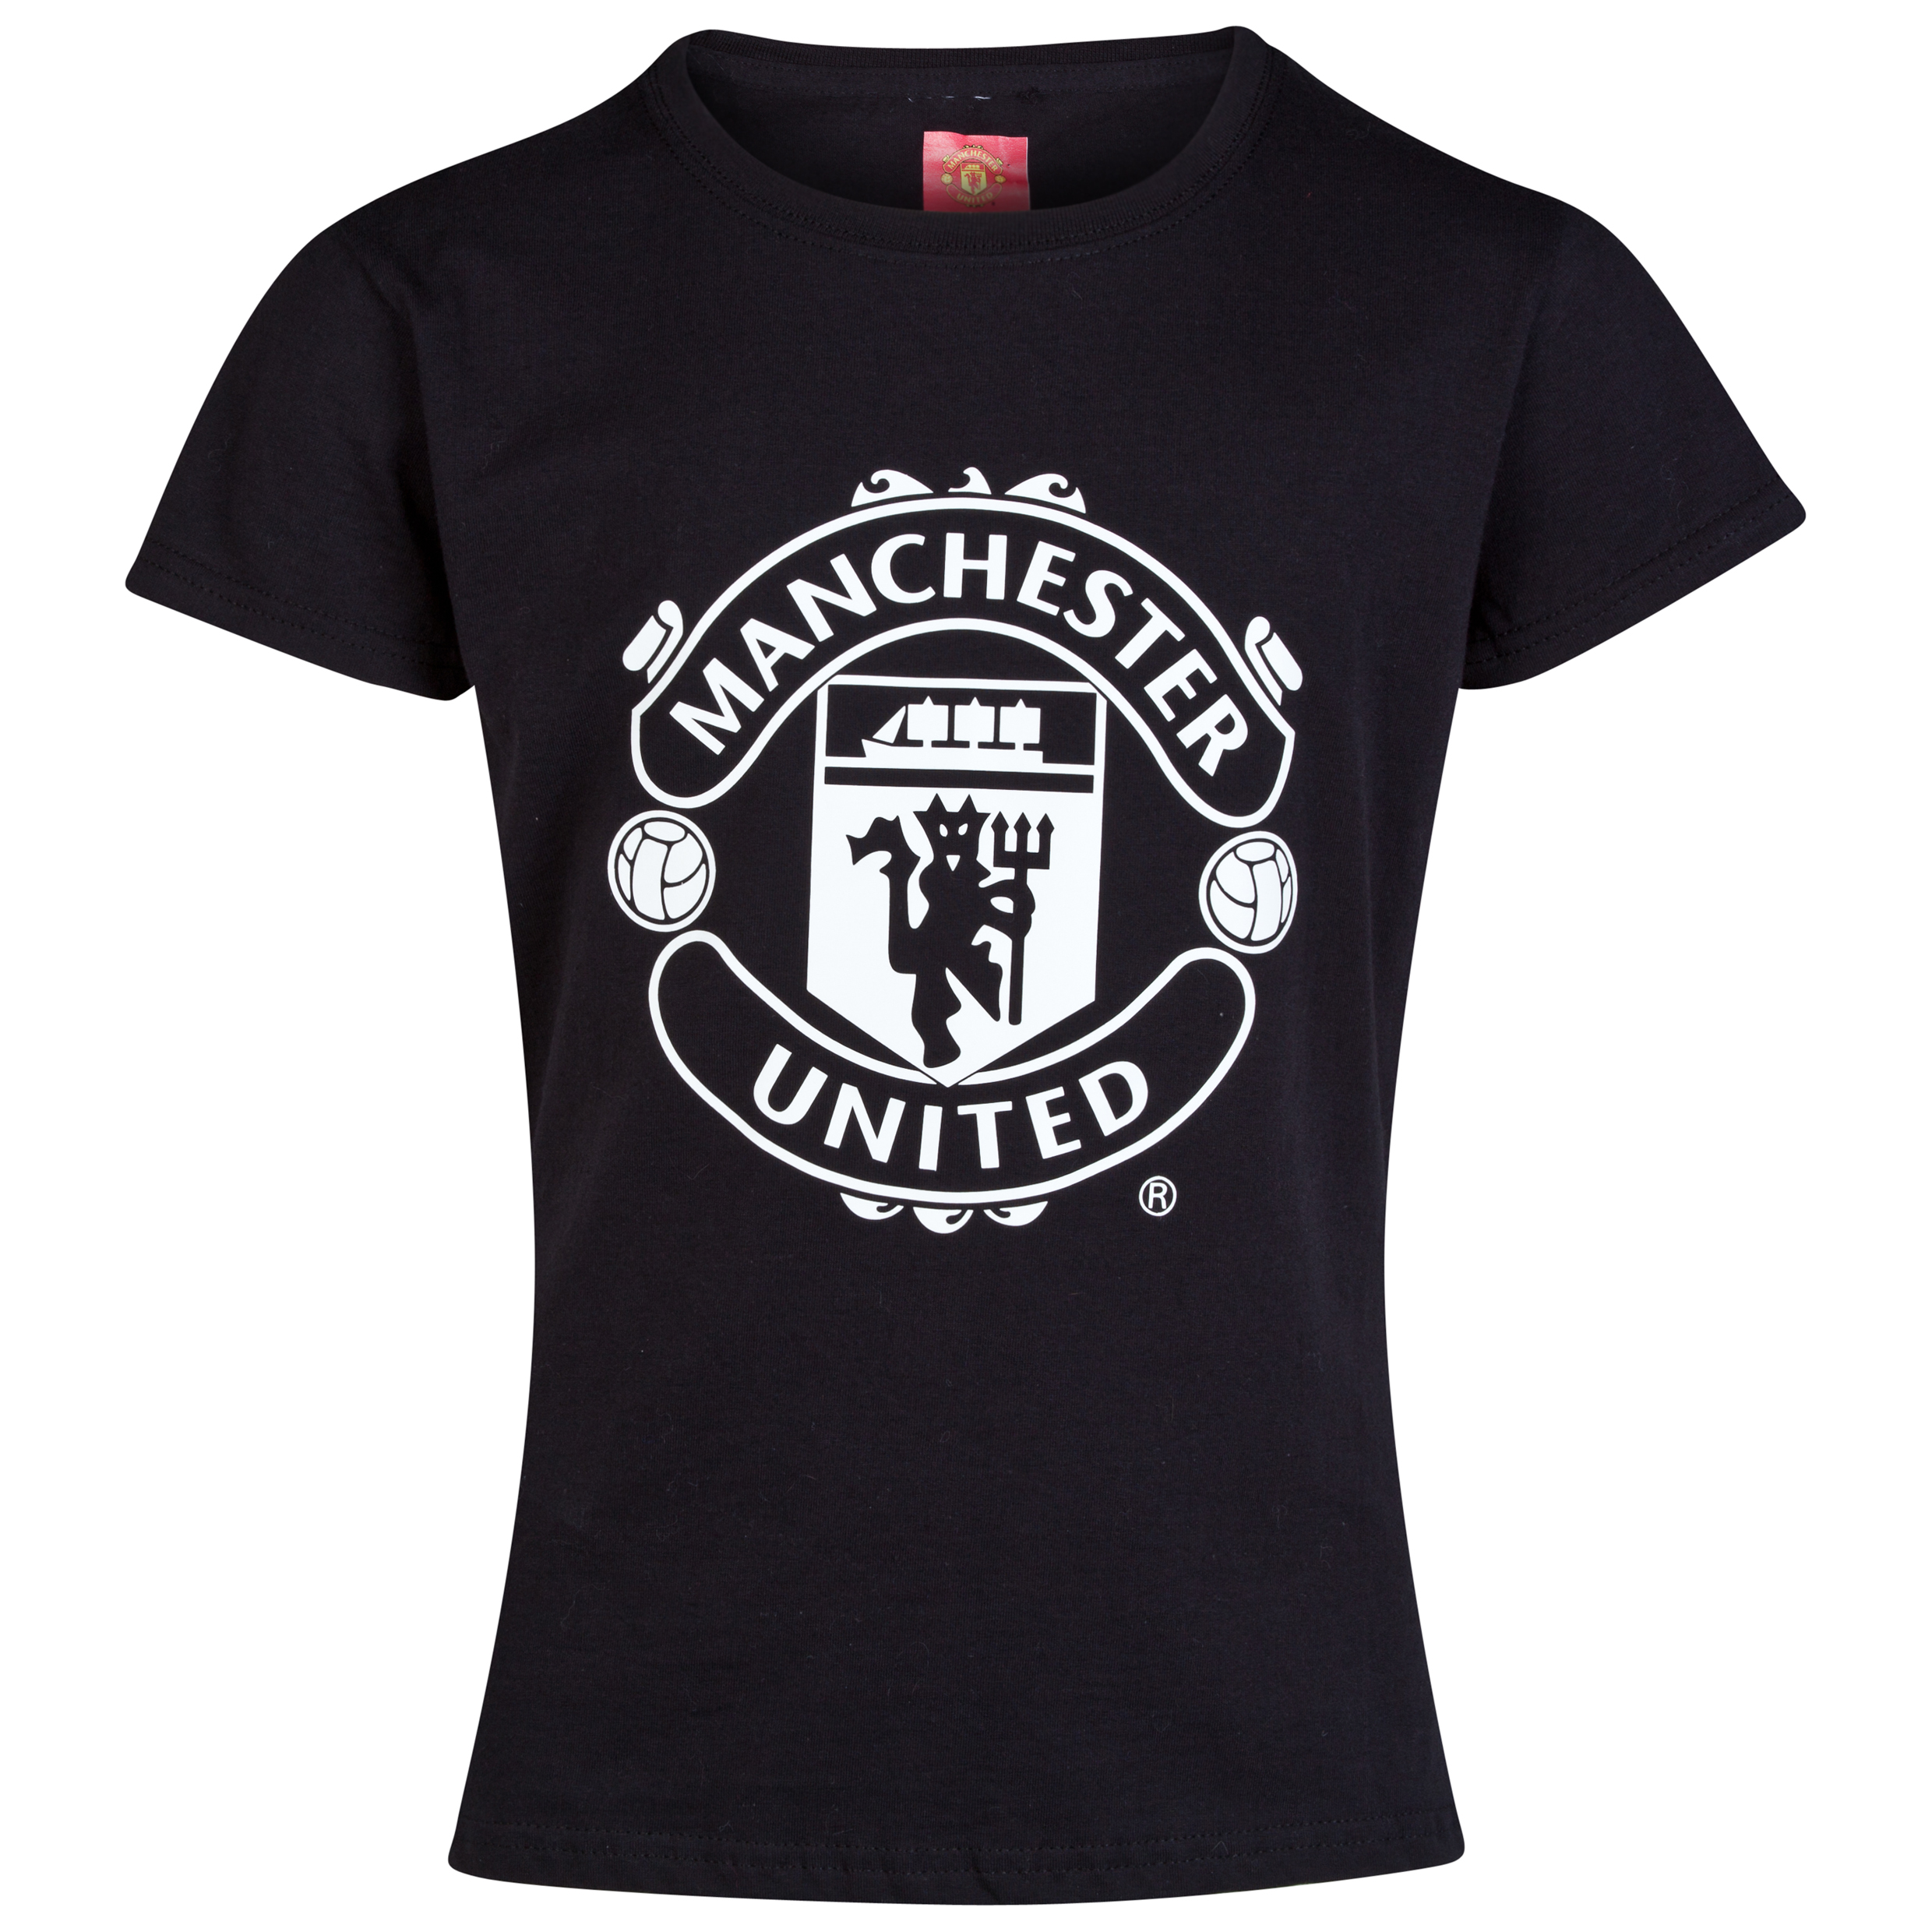 Manchester United Glow In The Dark Crest T-Shirt - Older Girls Black